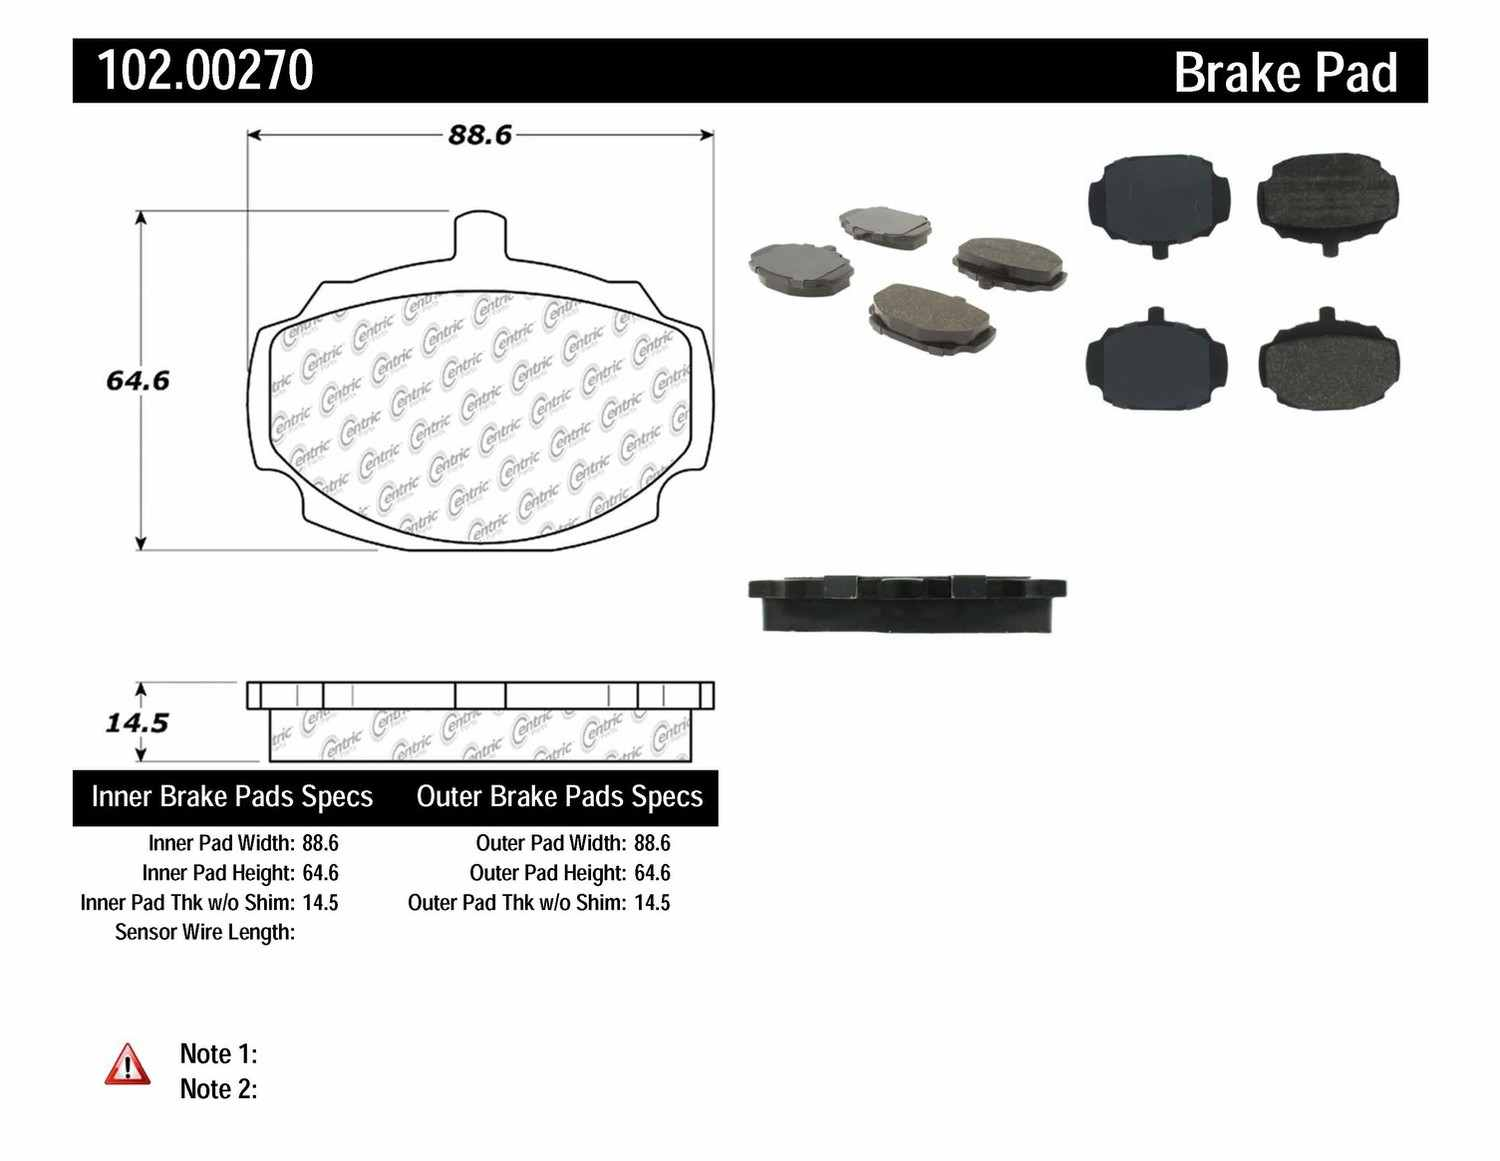 C-TEK BY CENTRIC - C-TEK Metallic Brake Pads-Preferred - CTK 102.00270